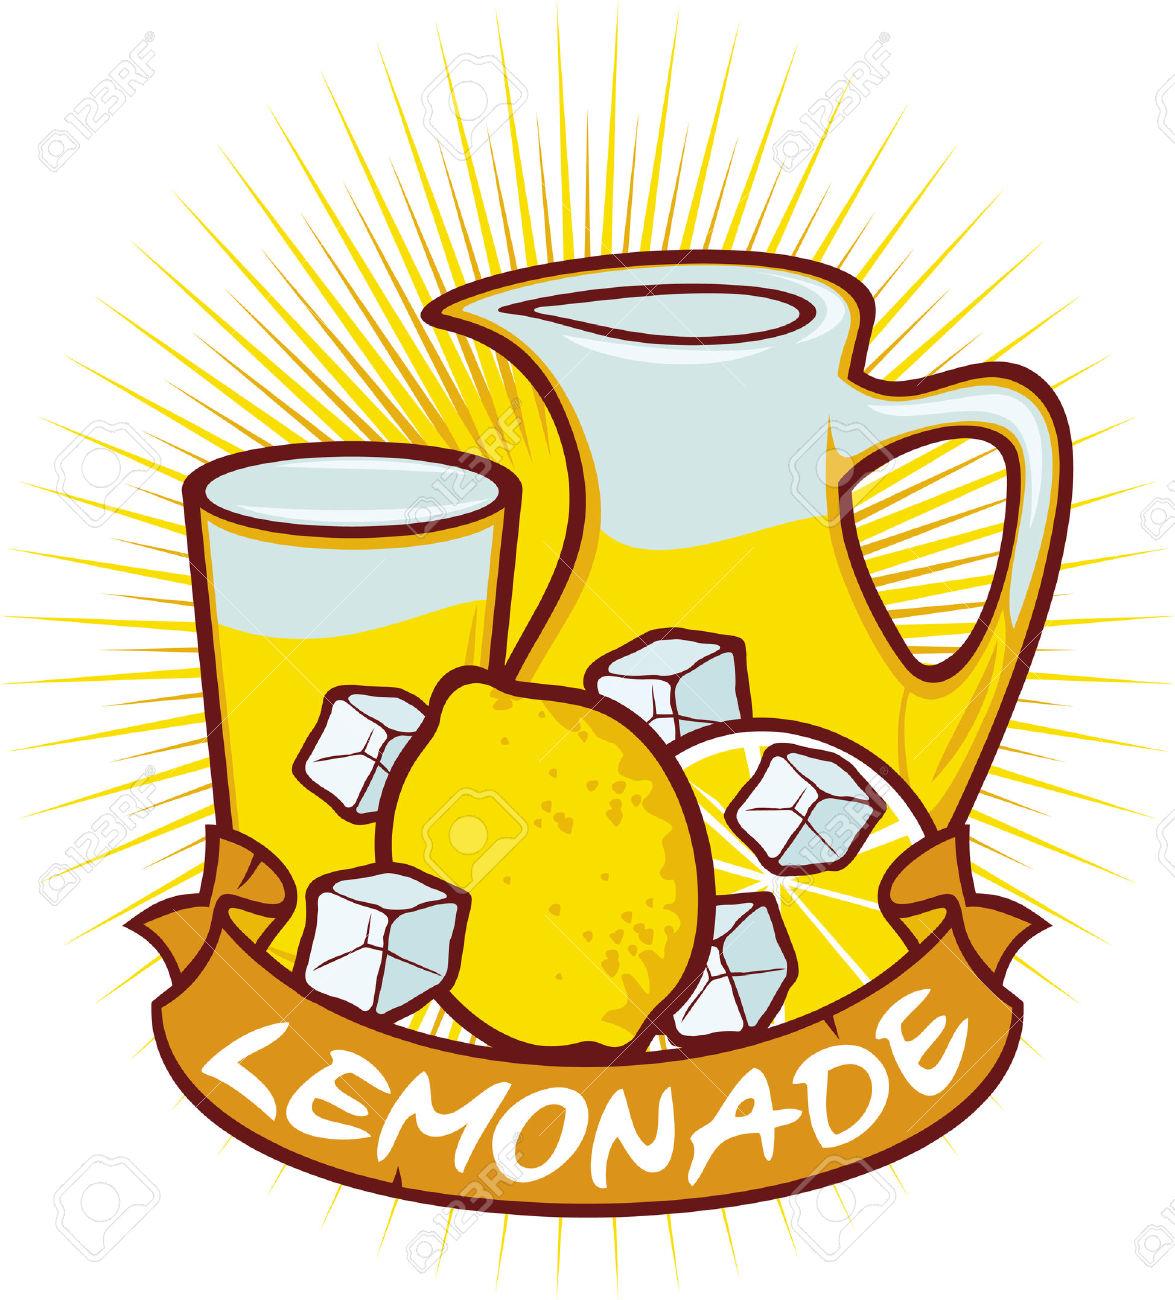 3,909 Glass Of Lemonade Stock Vector Illustration And Royalty Free.